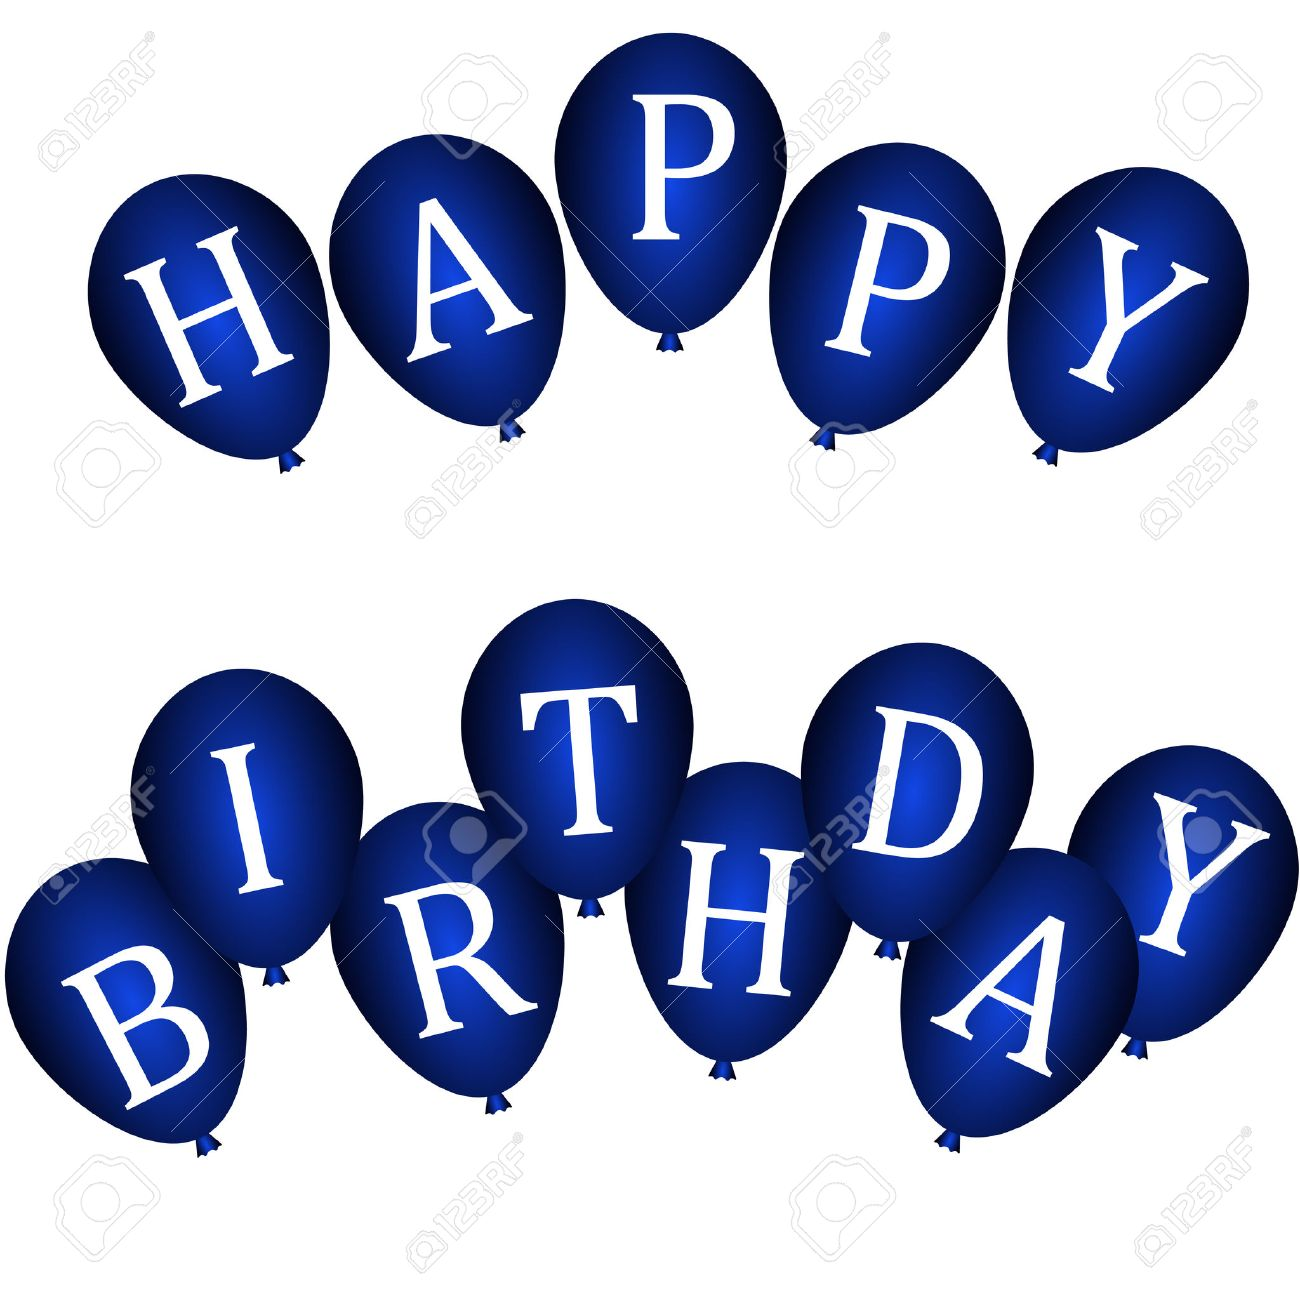 Happy Birthday Banners With Blue Balloons Royalty Free Cliparts Vectors And Stock Illustration Image 25166166